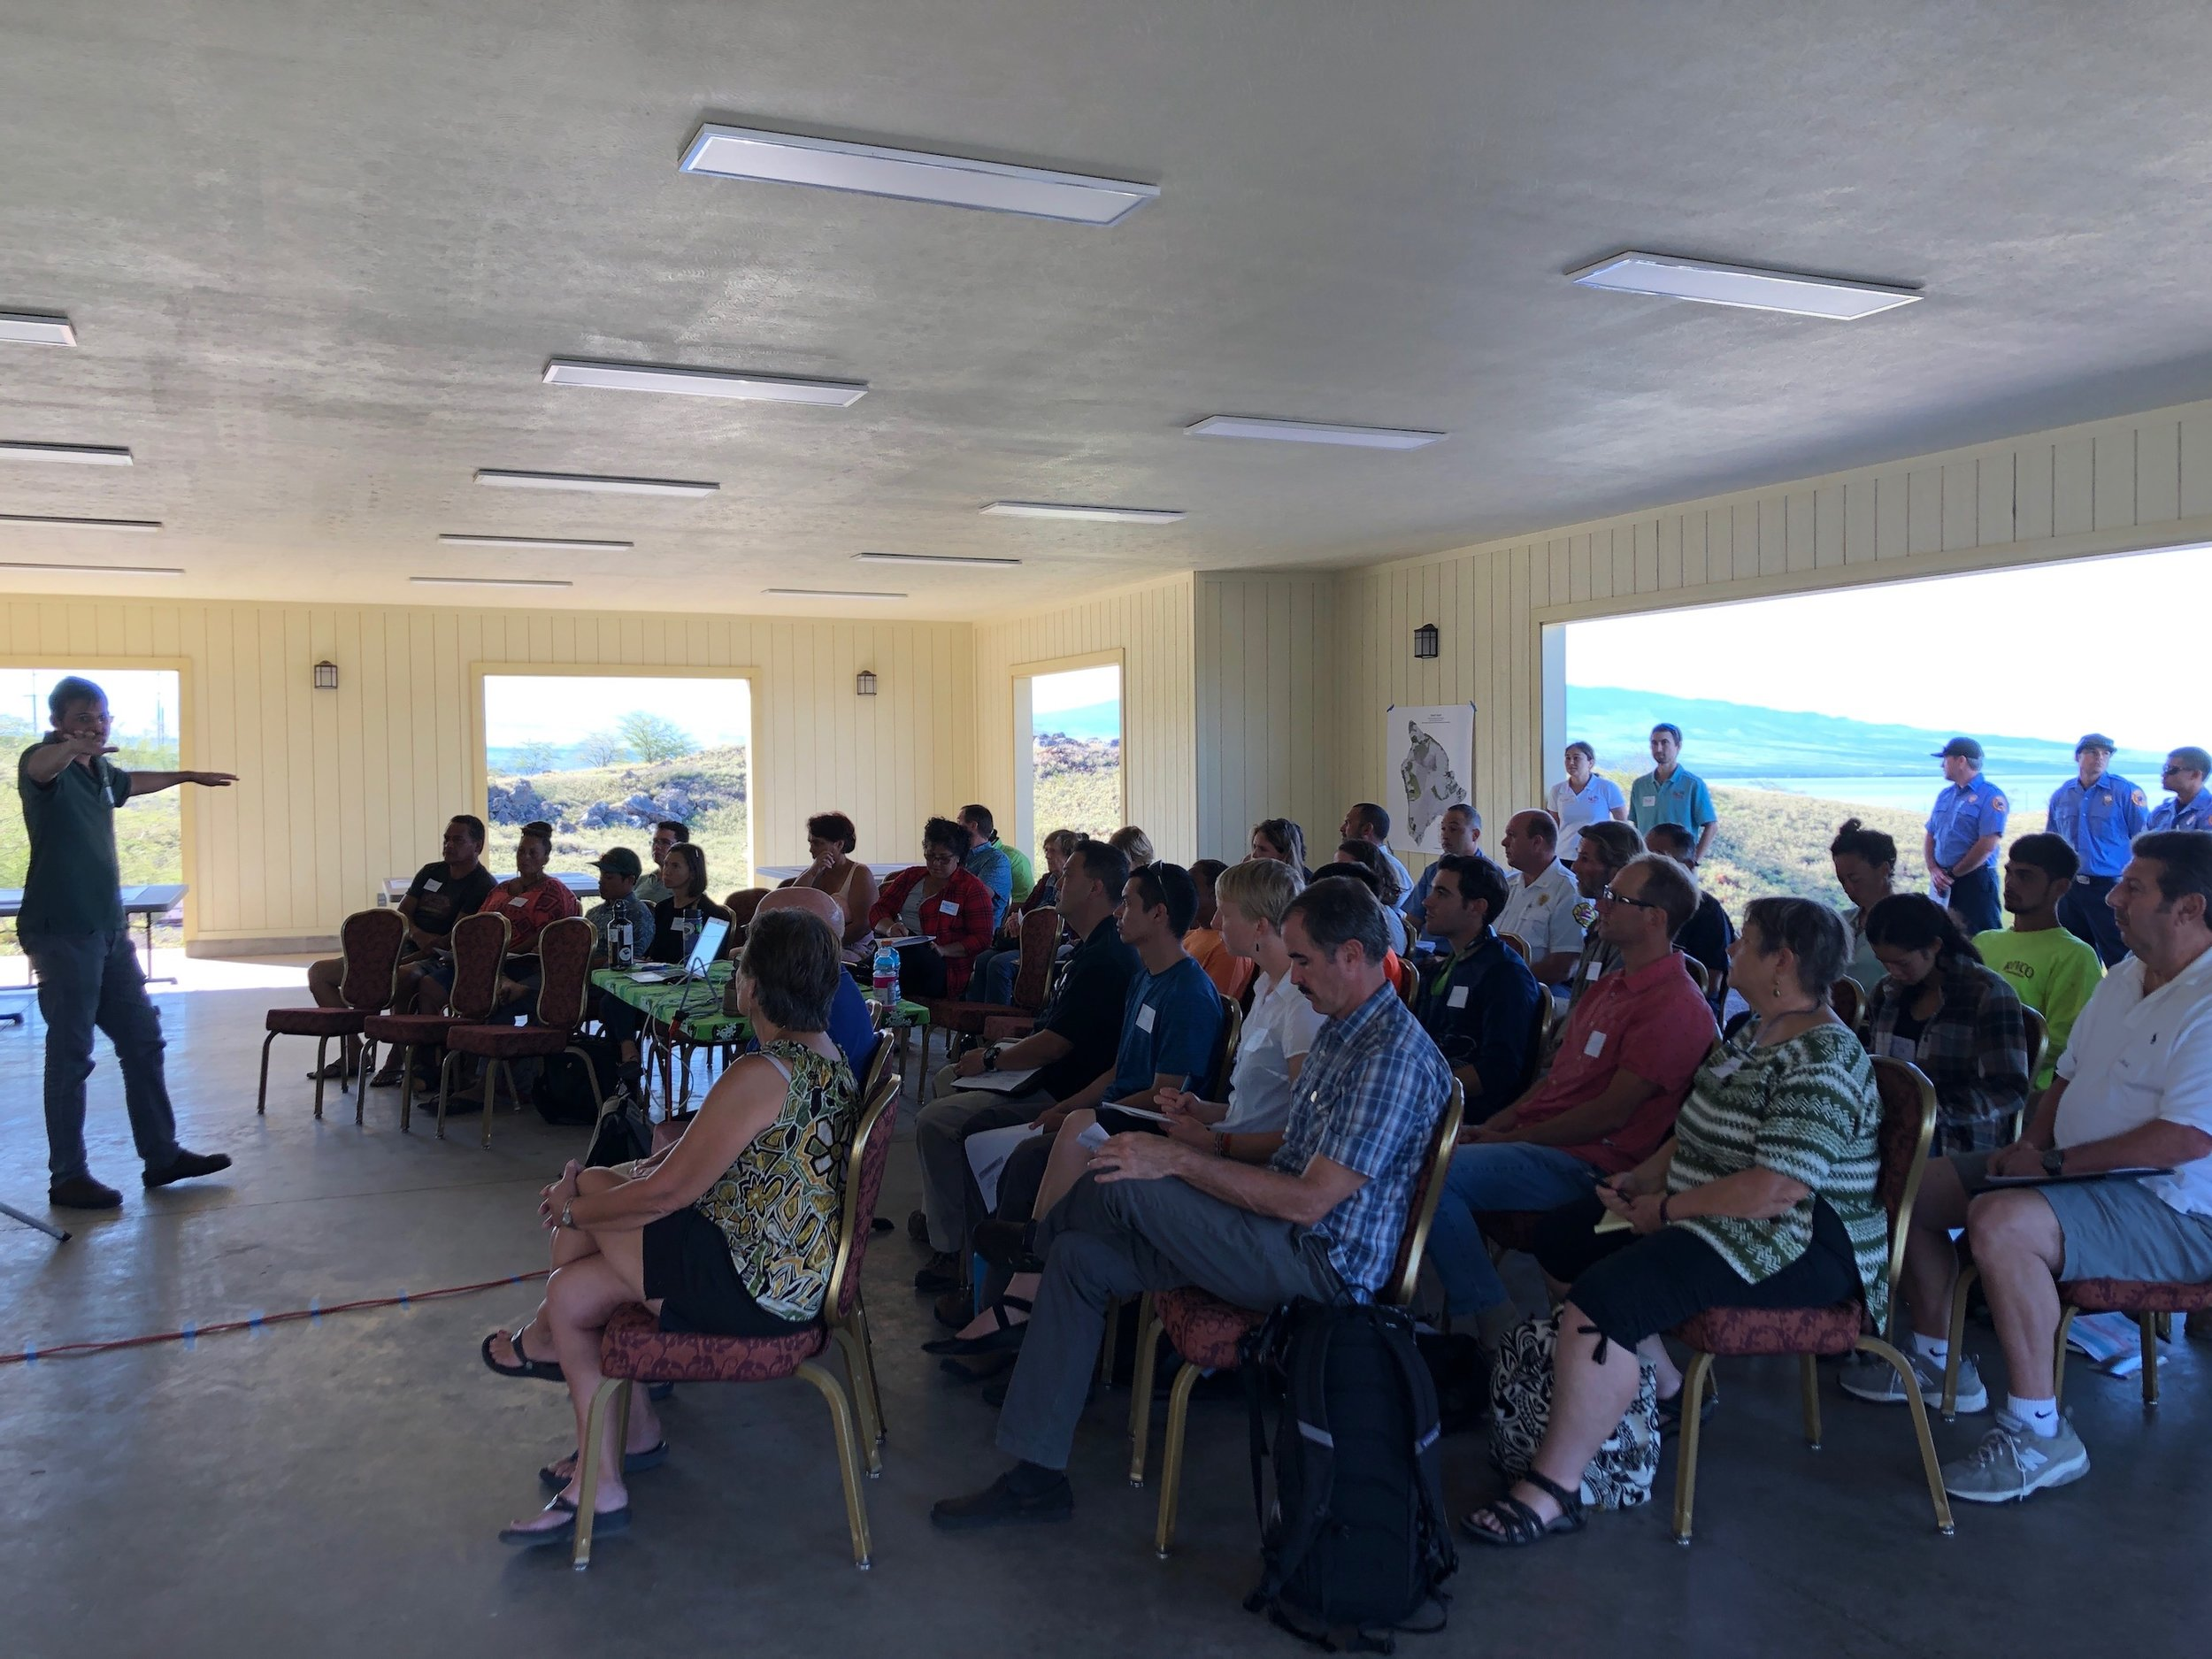 Hawaii Island Kailapa Vegetative Fuels Management Collaborative Action Planning Workshop_2_26_2019_12.jpg